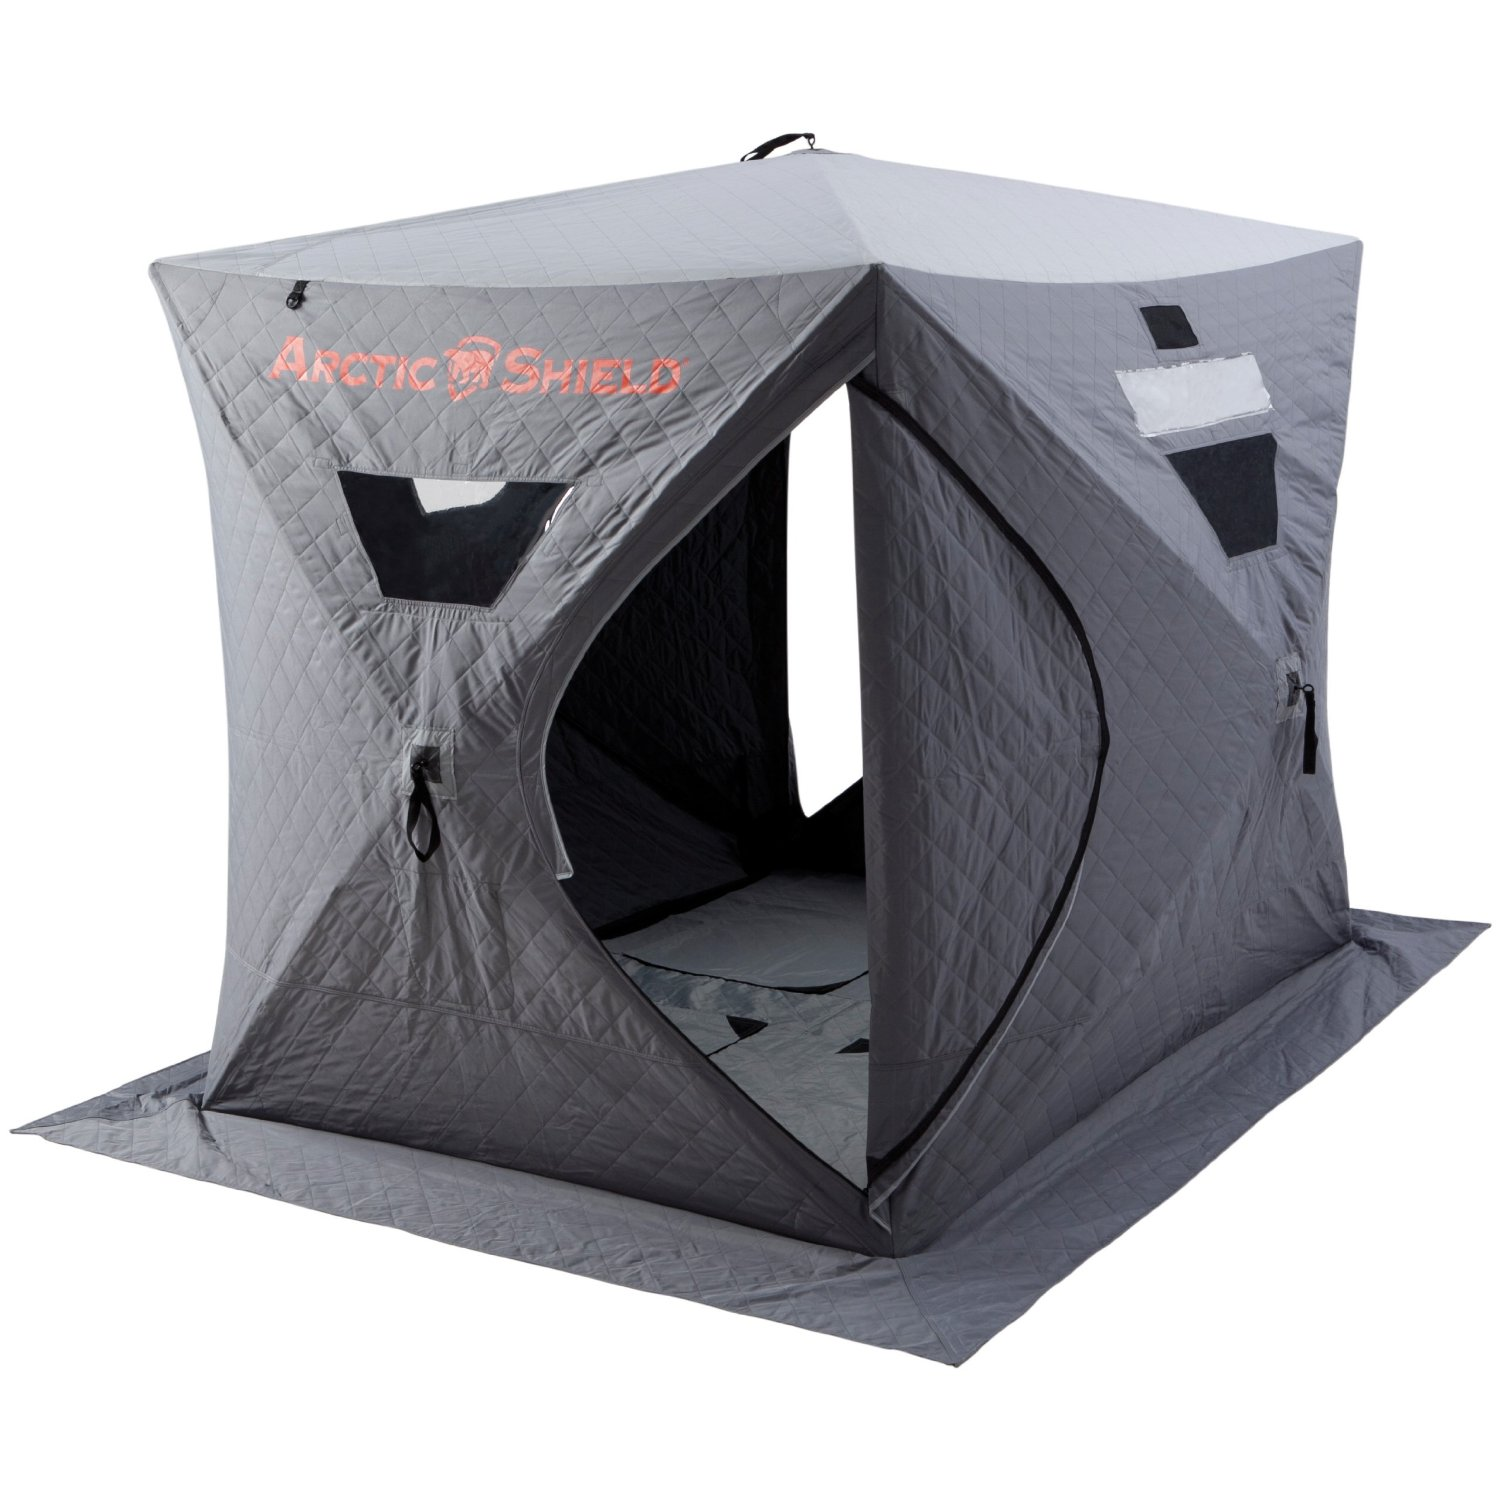 Best ice fishing shelters thrifty outdoors manthrifty for Ice fishing tents